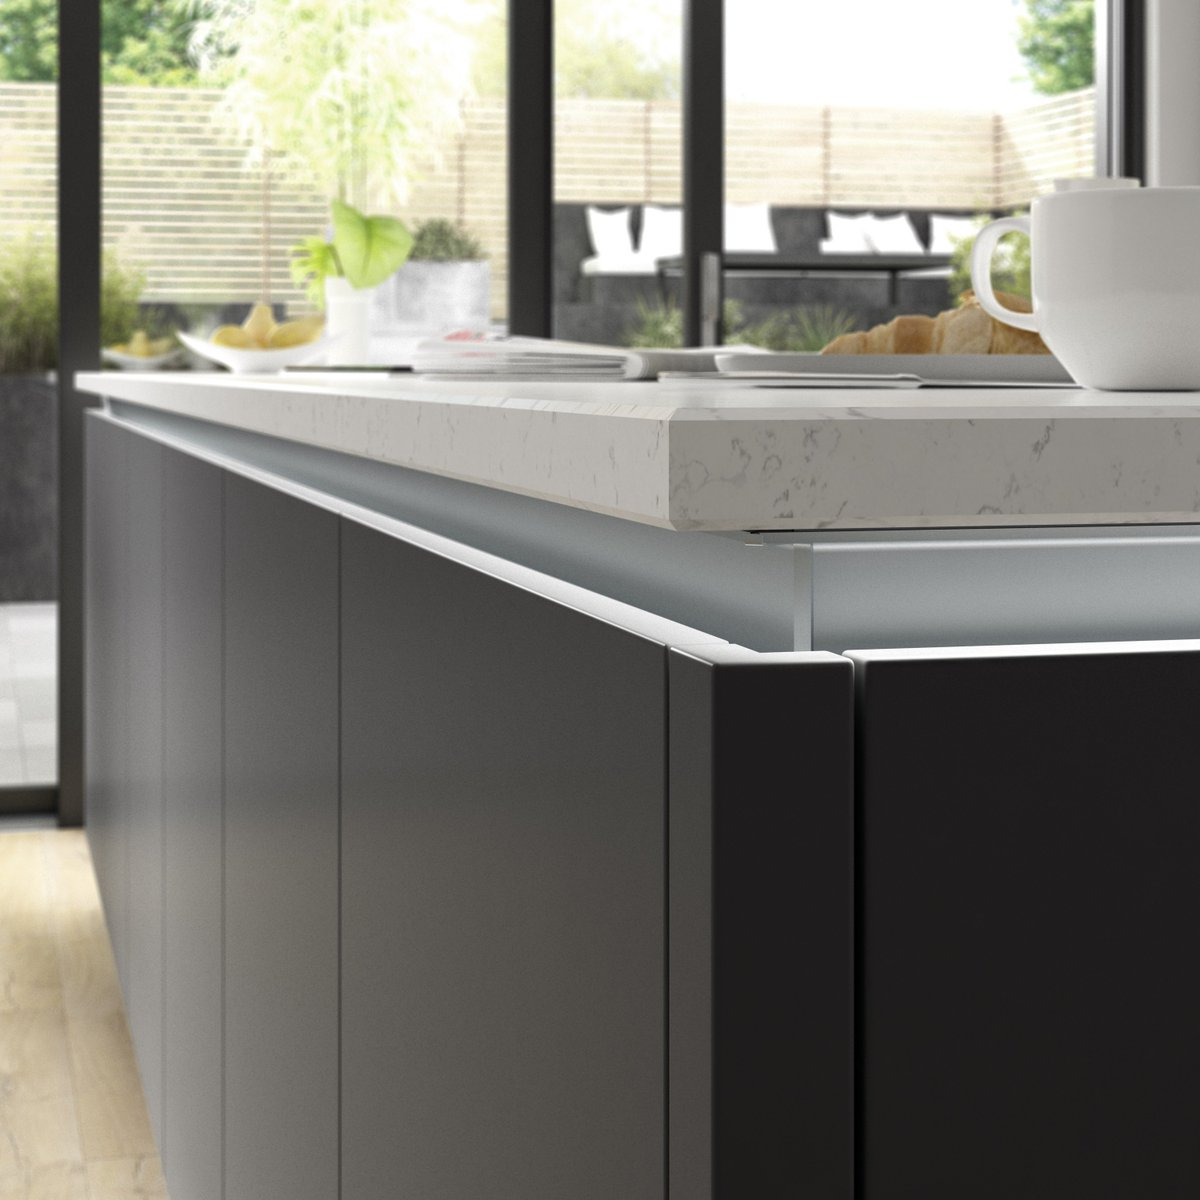 Benchmarx Kitchens Joinery On Twitter Our True Handleless Designs Are Perfect For Under Counter Led Feature Lighting This Can Also Be Combined With Our 12mm Zenith Compact Laminate Worktops For An